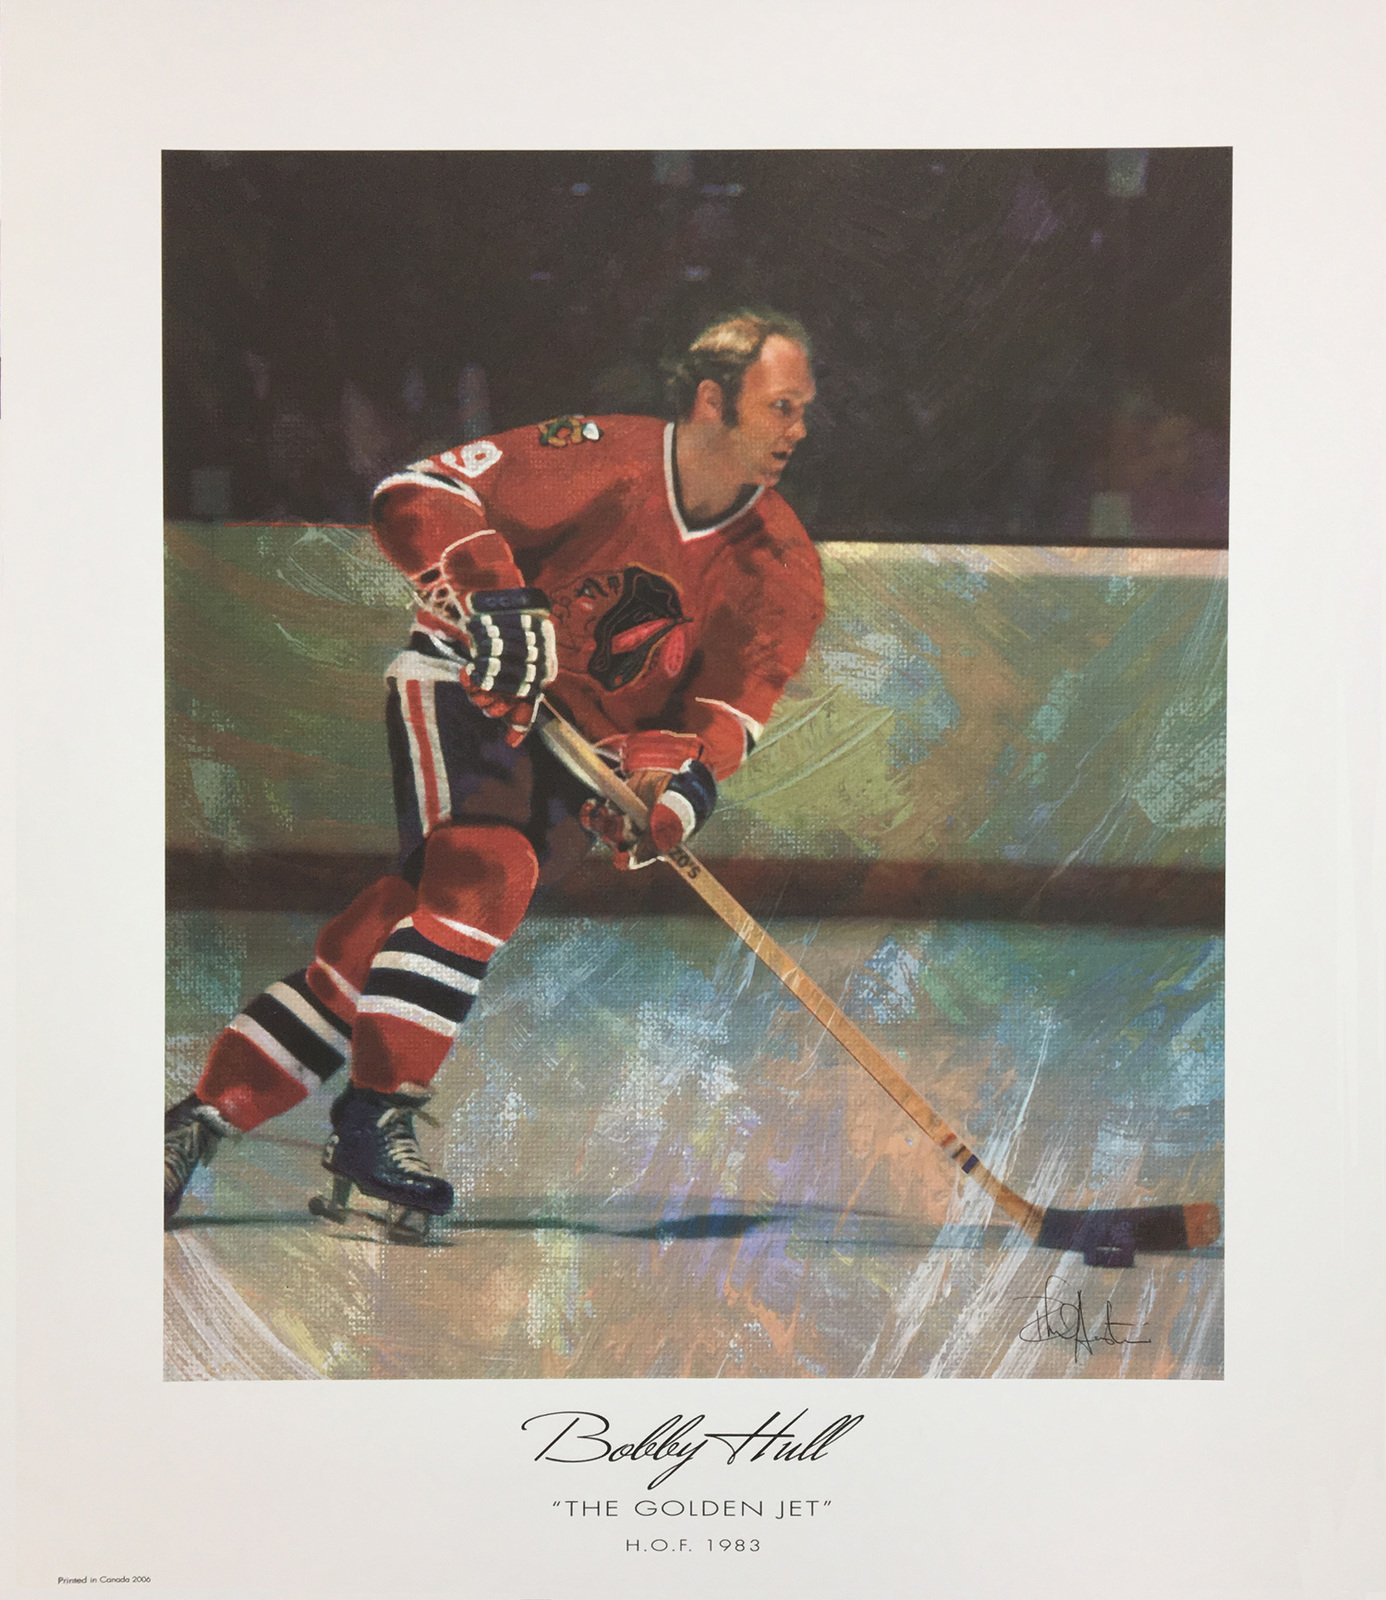 The Golden Jet Lithograph - Bobby Hull - Chicago Blackhawks image 1